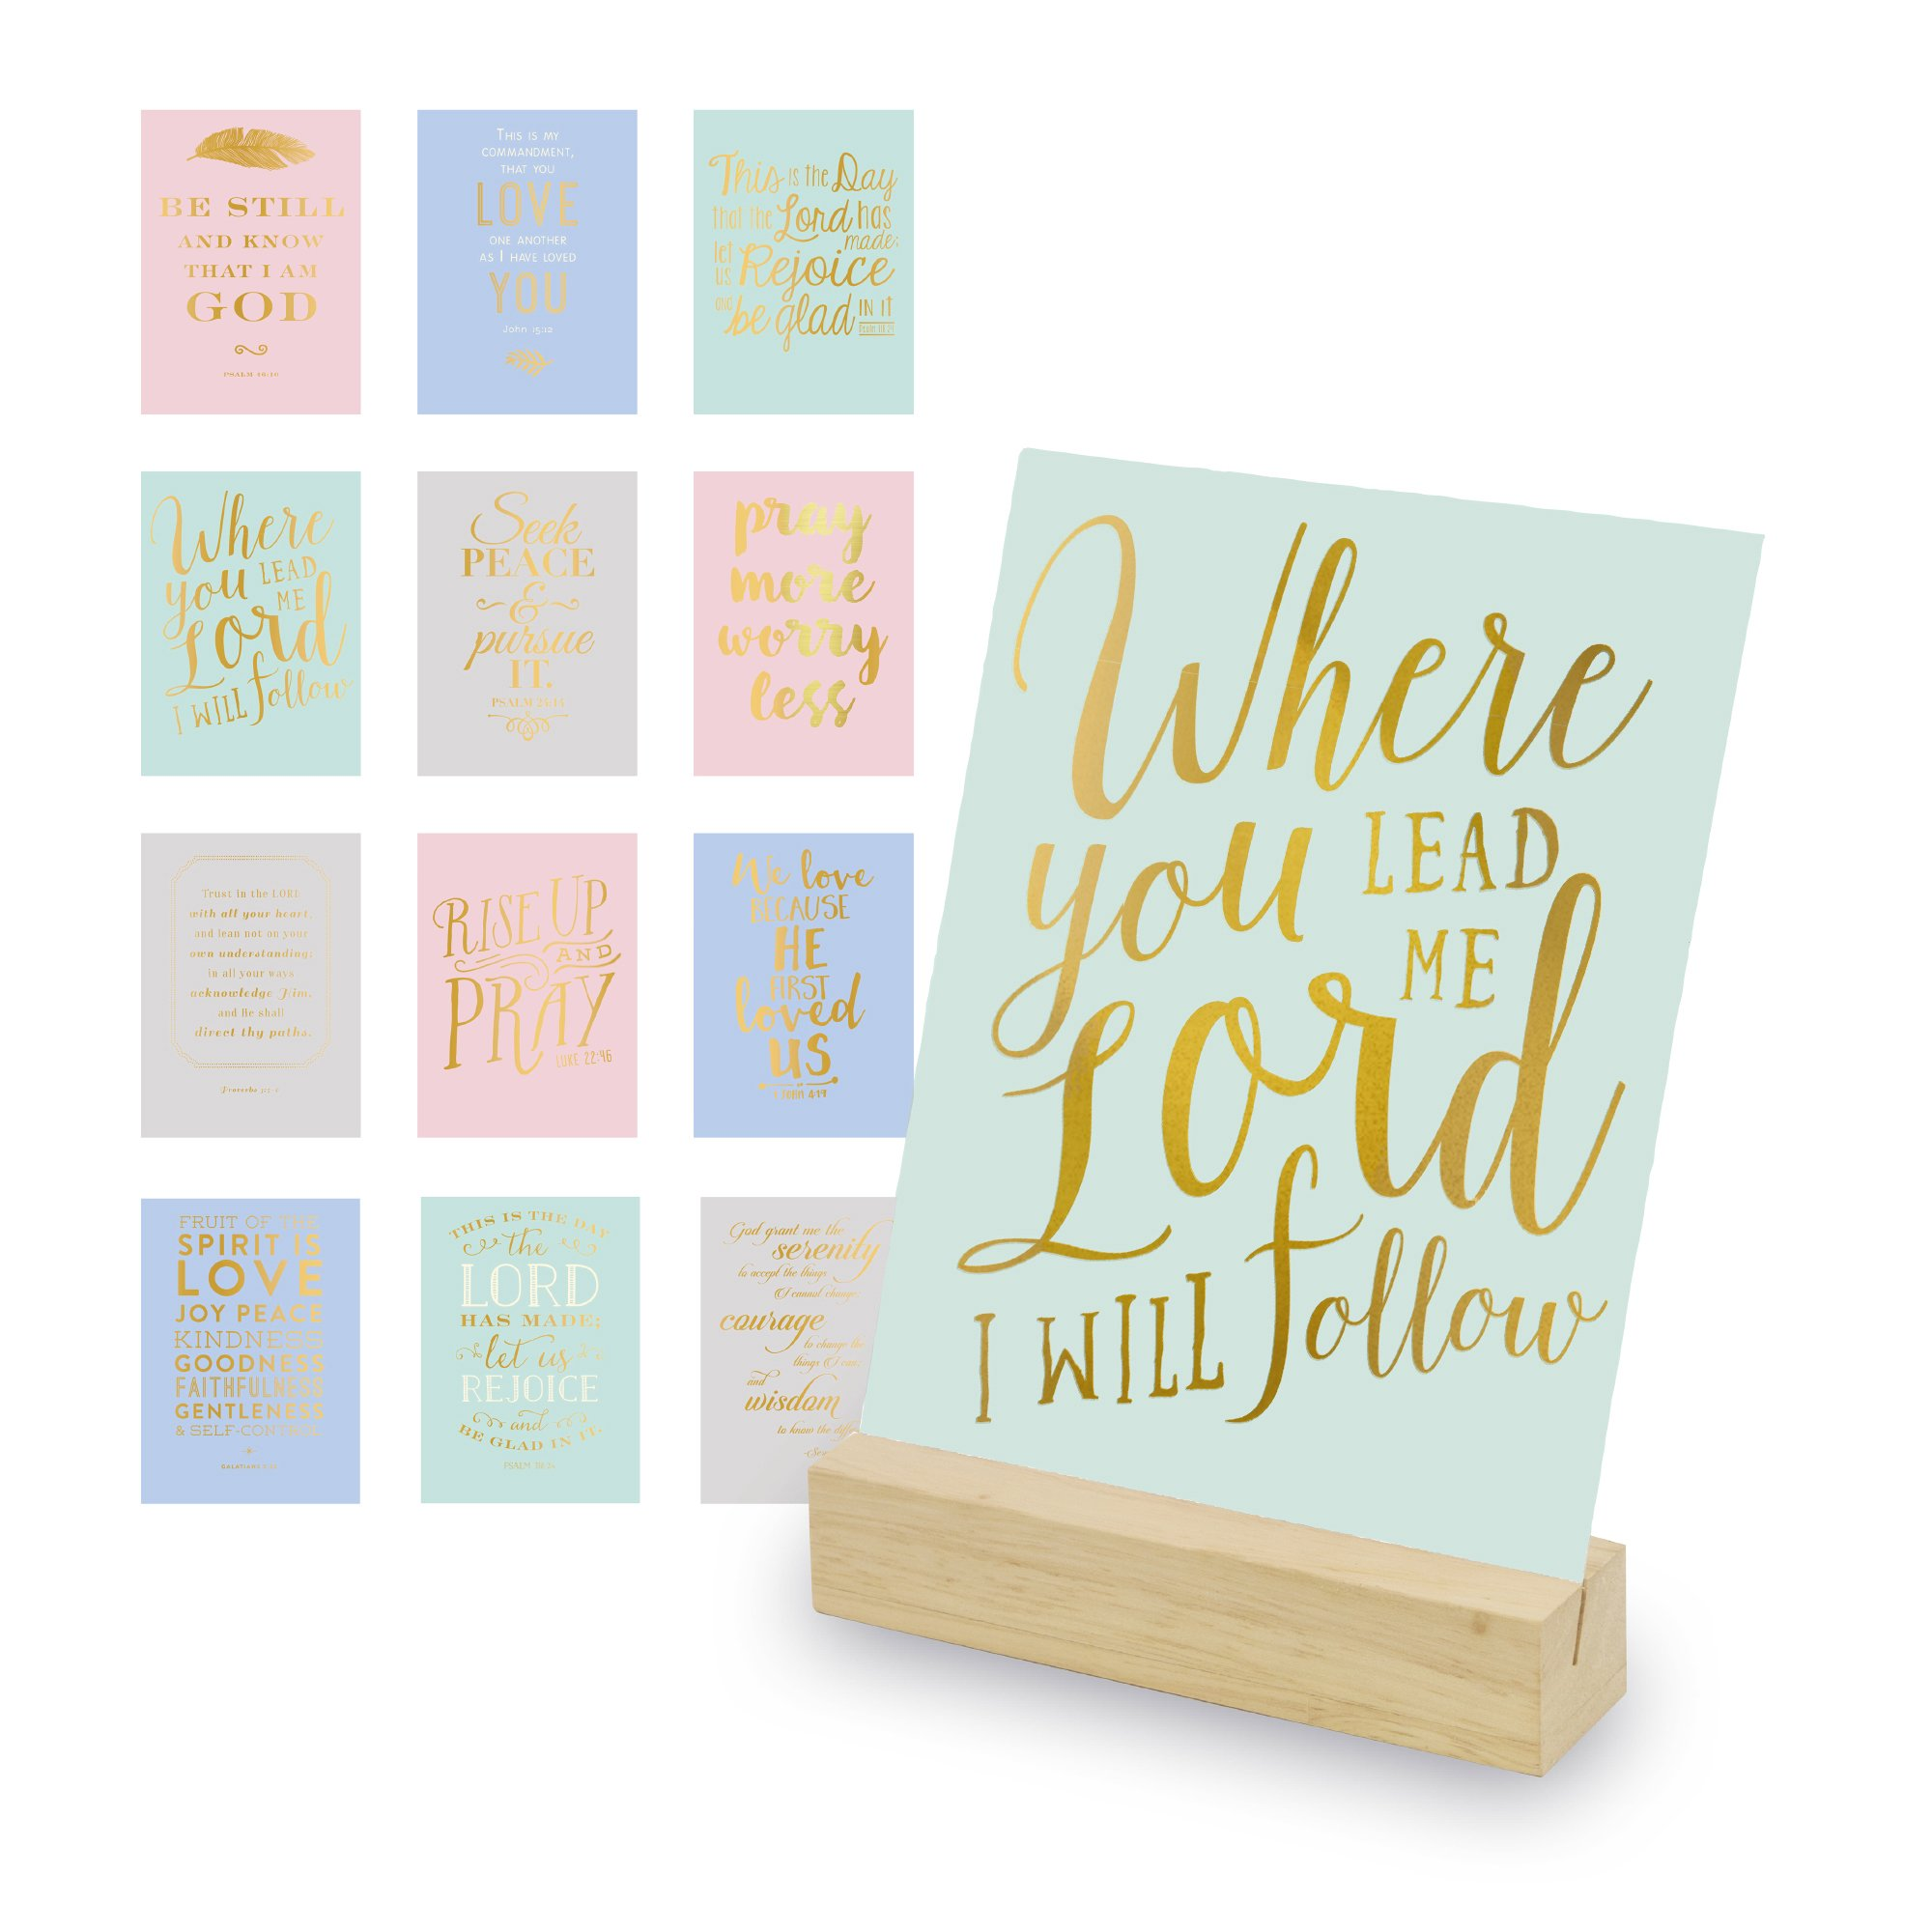 Eccolo World Traveler Christian Art Desk Stand, Wooden Block Stand, 12 Gold Stamped Inspirational Cards